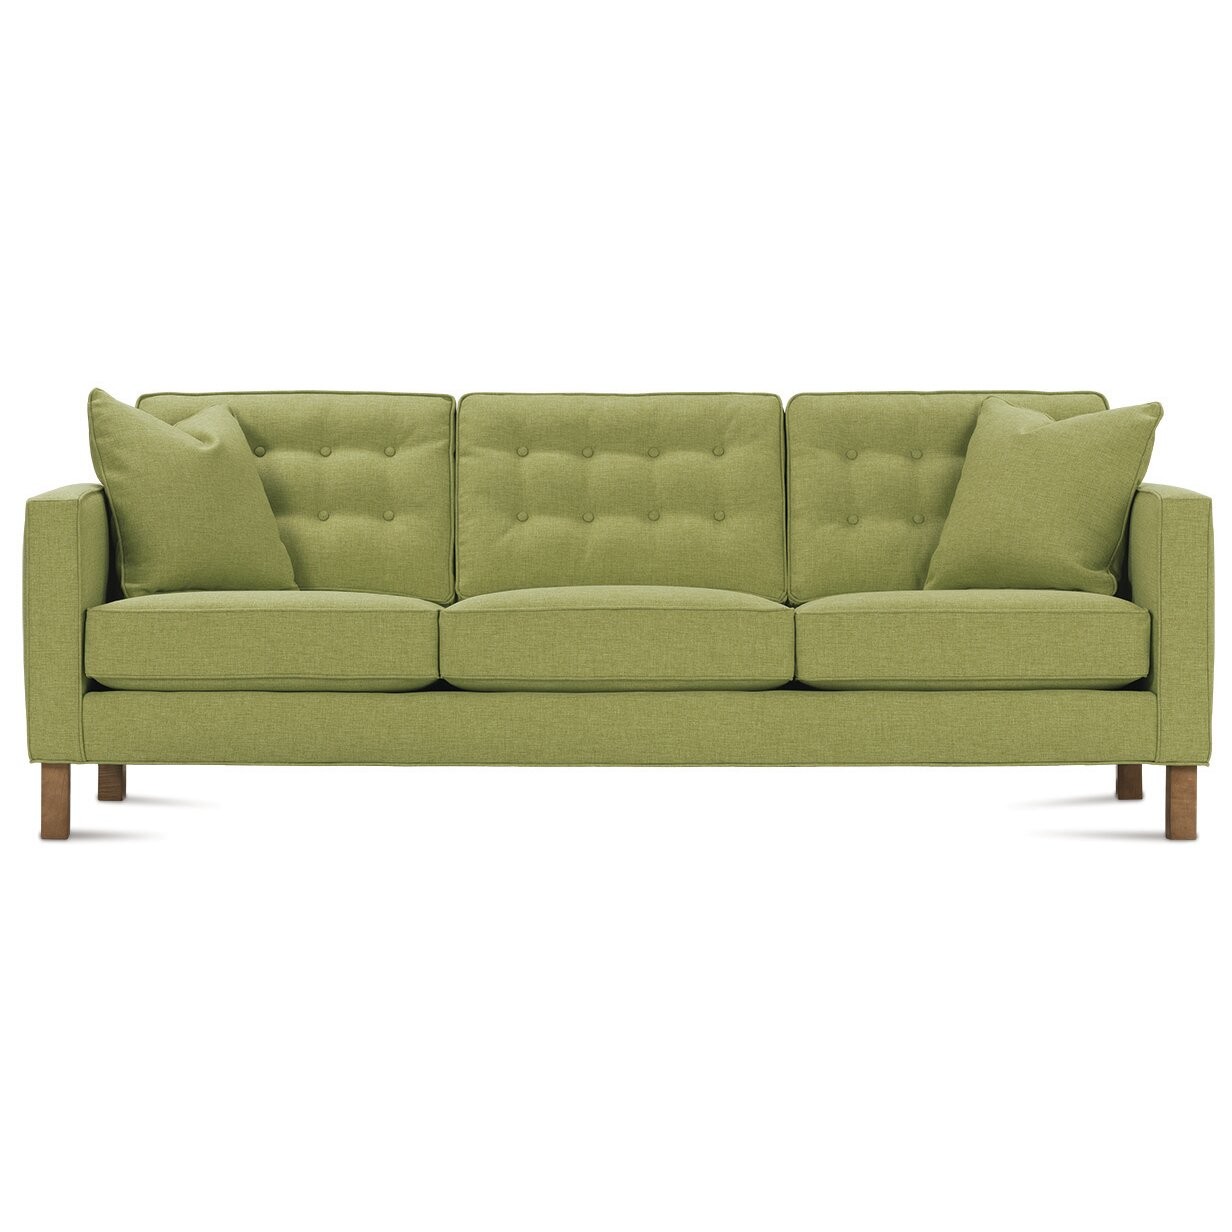 Warefair Com: Rowe Furniture Abbott Sofa & Reviews